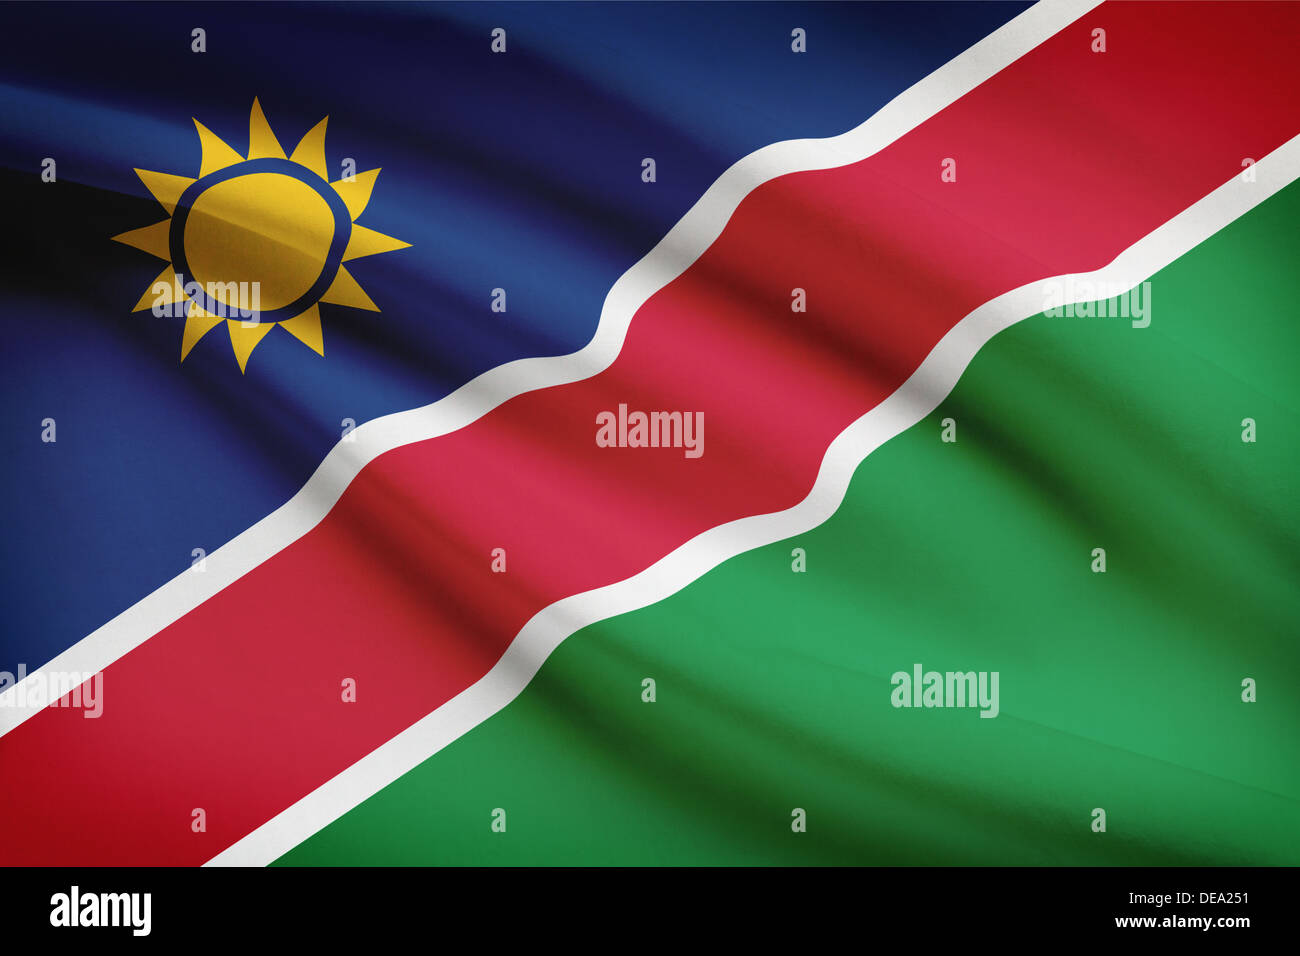 Namibian flag blowing in the wind. Part of a series. - Stock Image